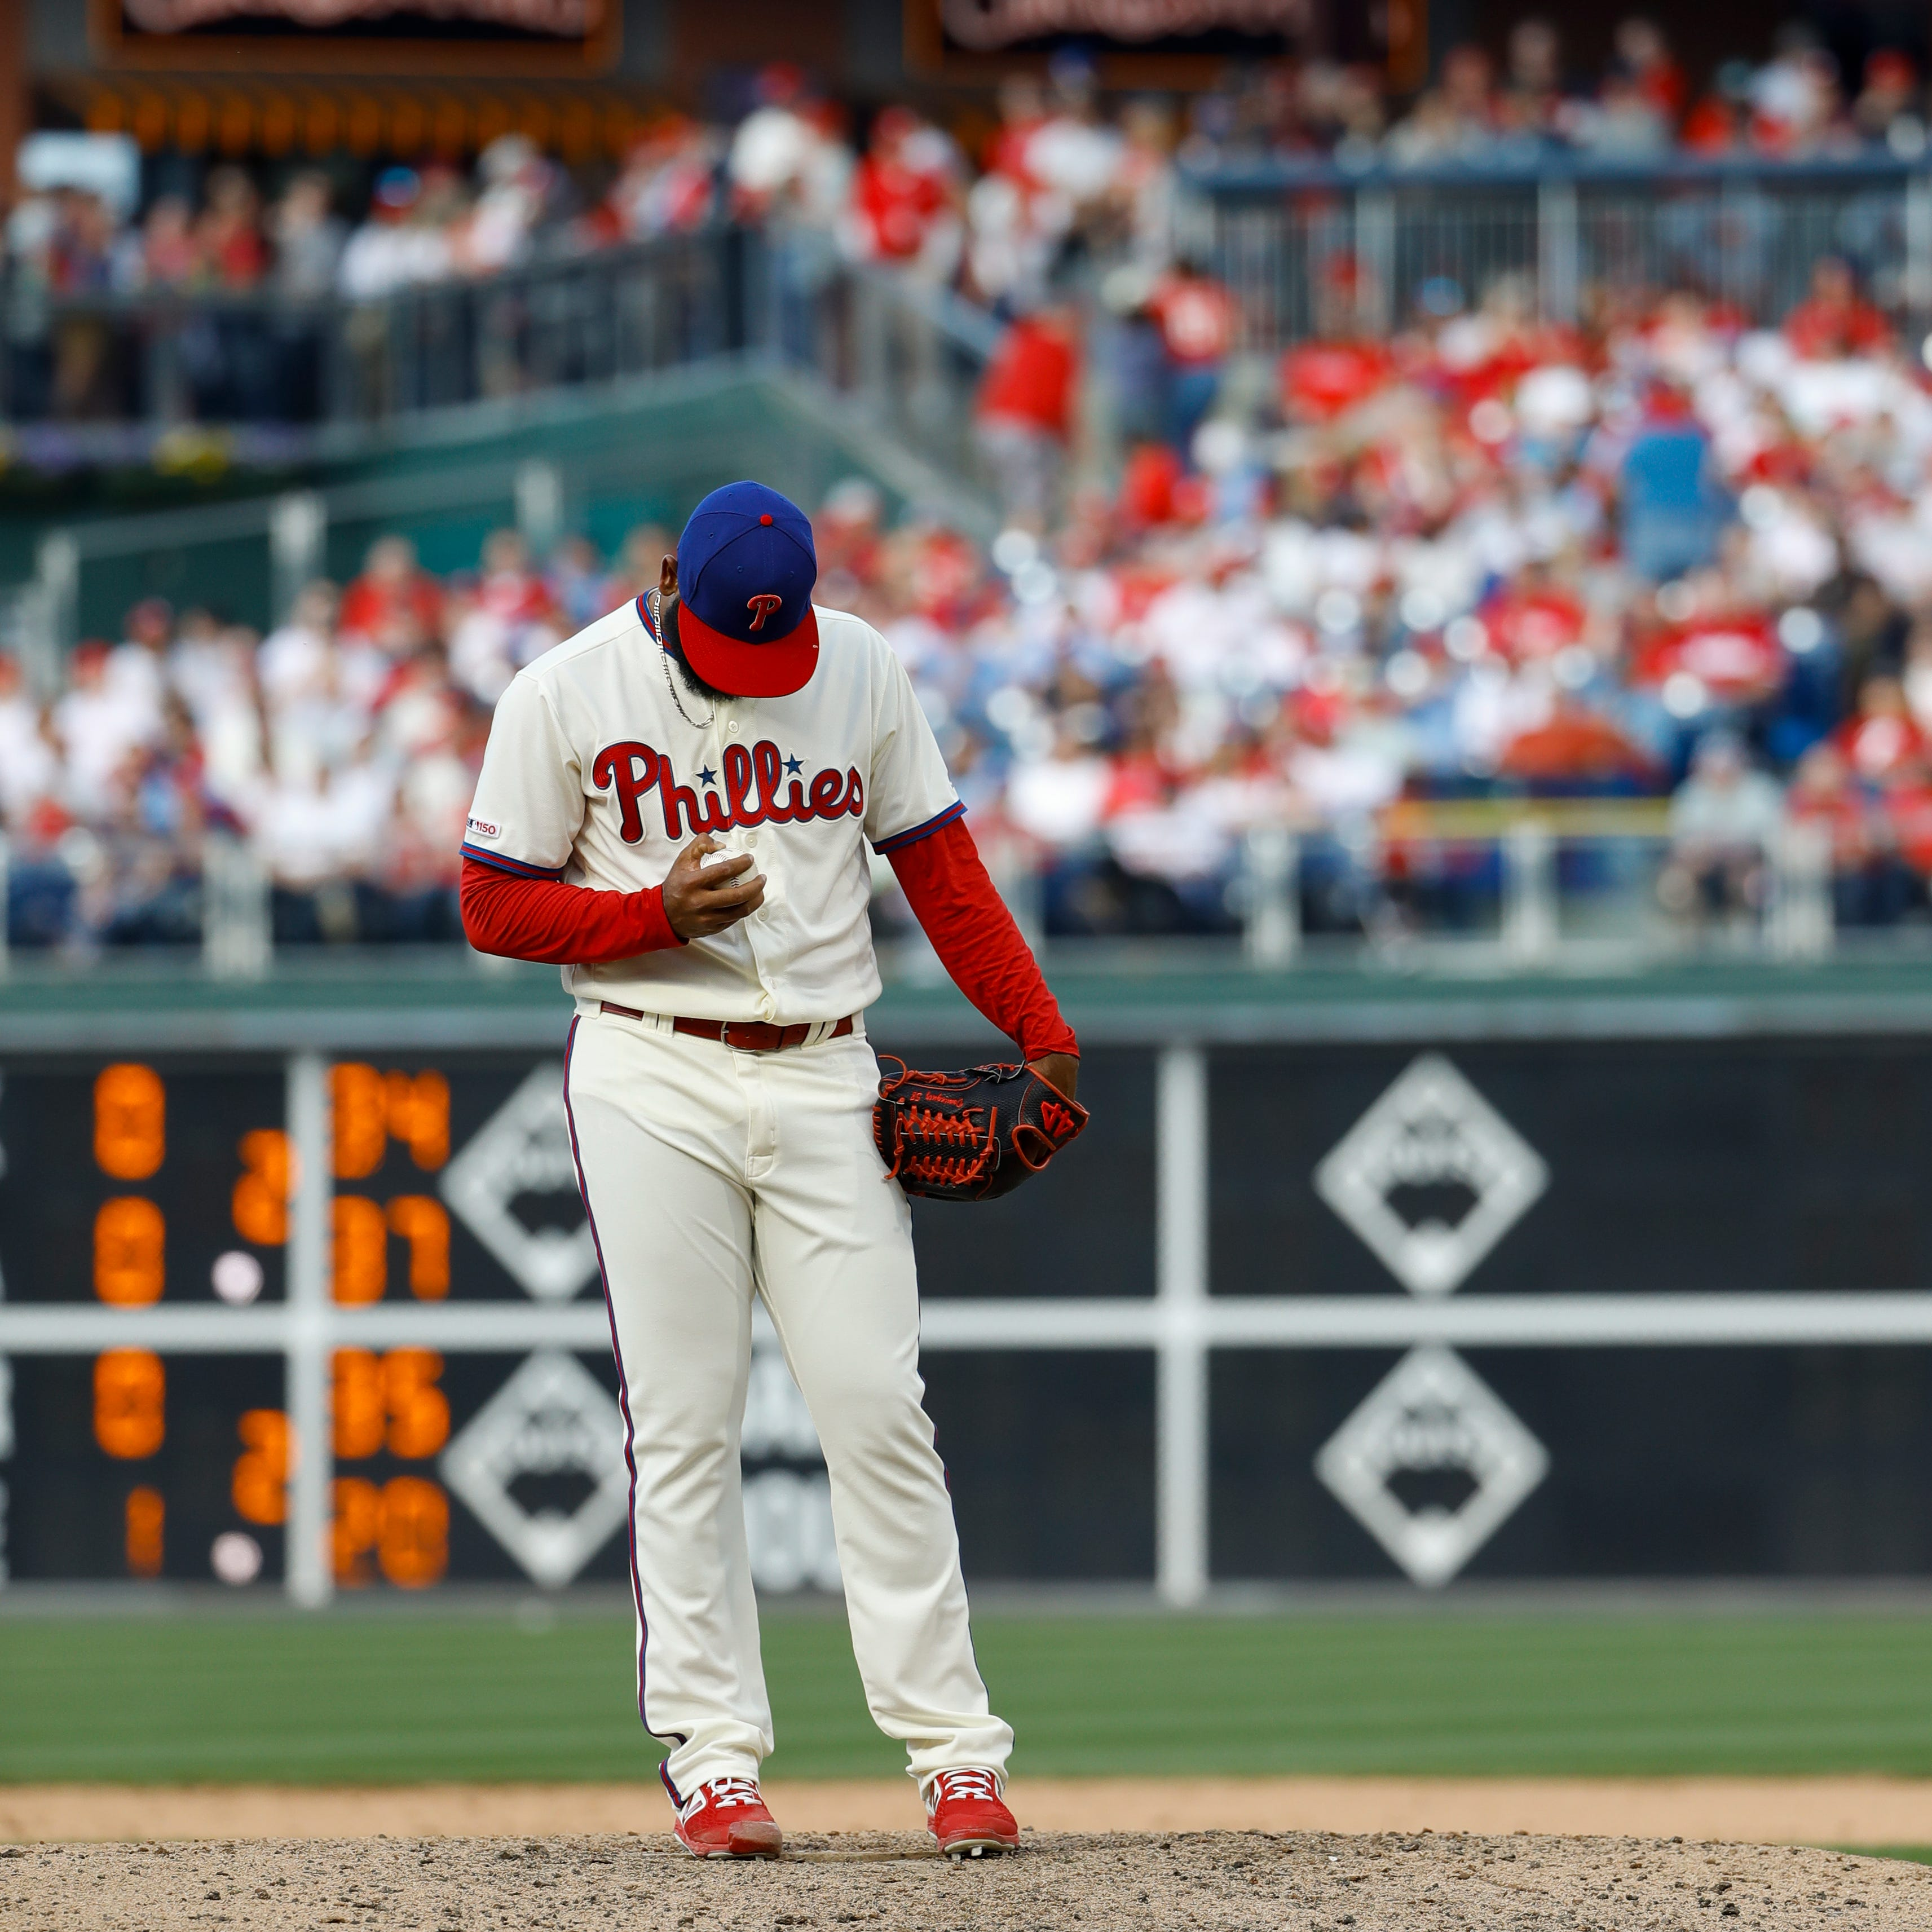 Bad inning by Seranthony Dominguez adds to Phillies' bullpen concerns